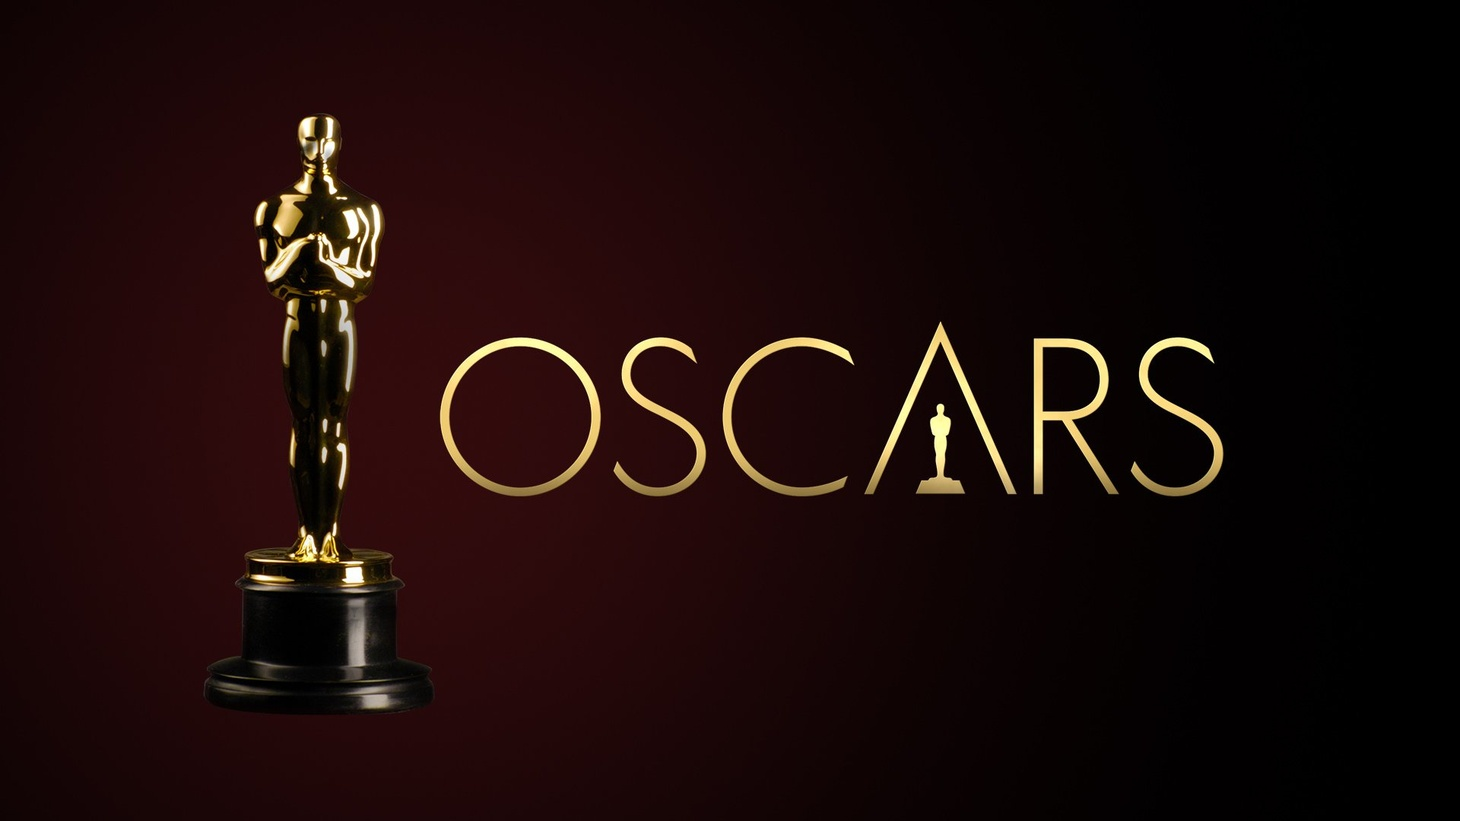 ABC will broadcast both the Oscars and Emmys this awards season.